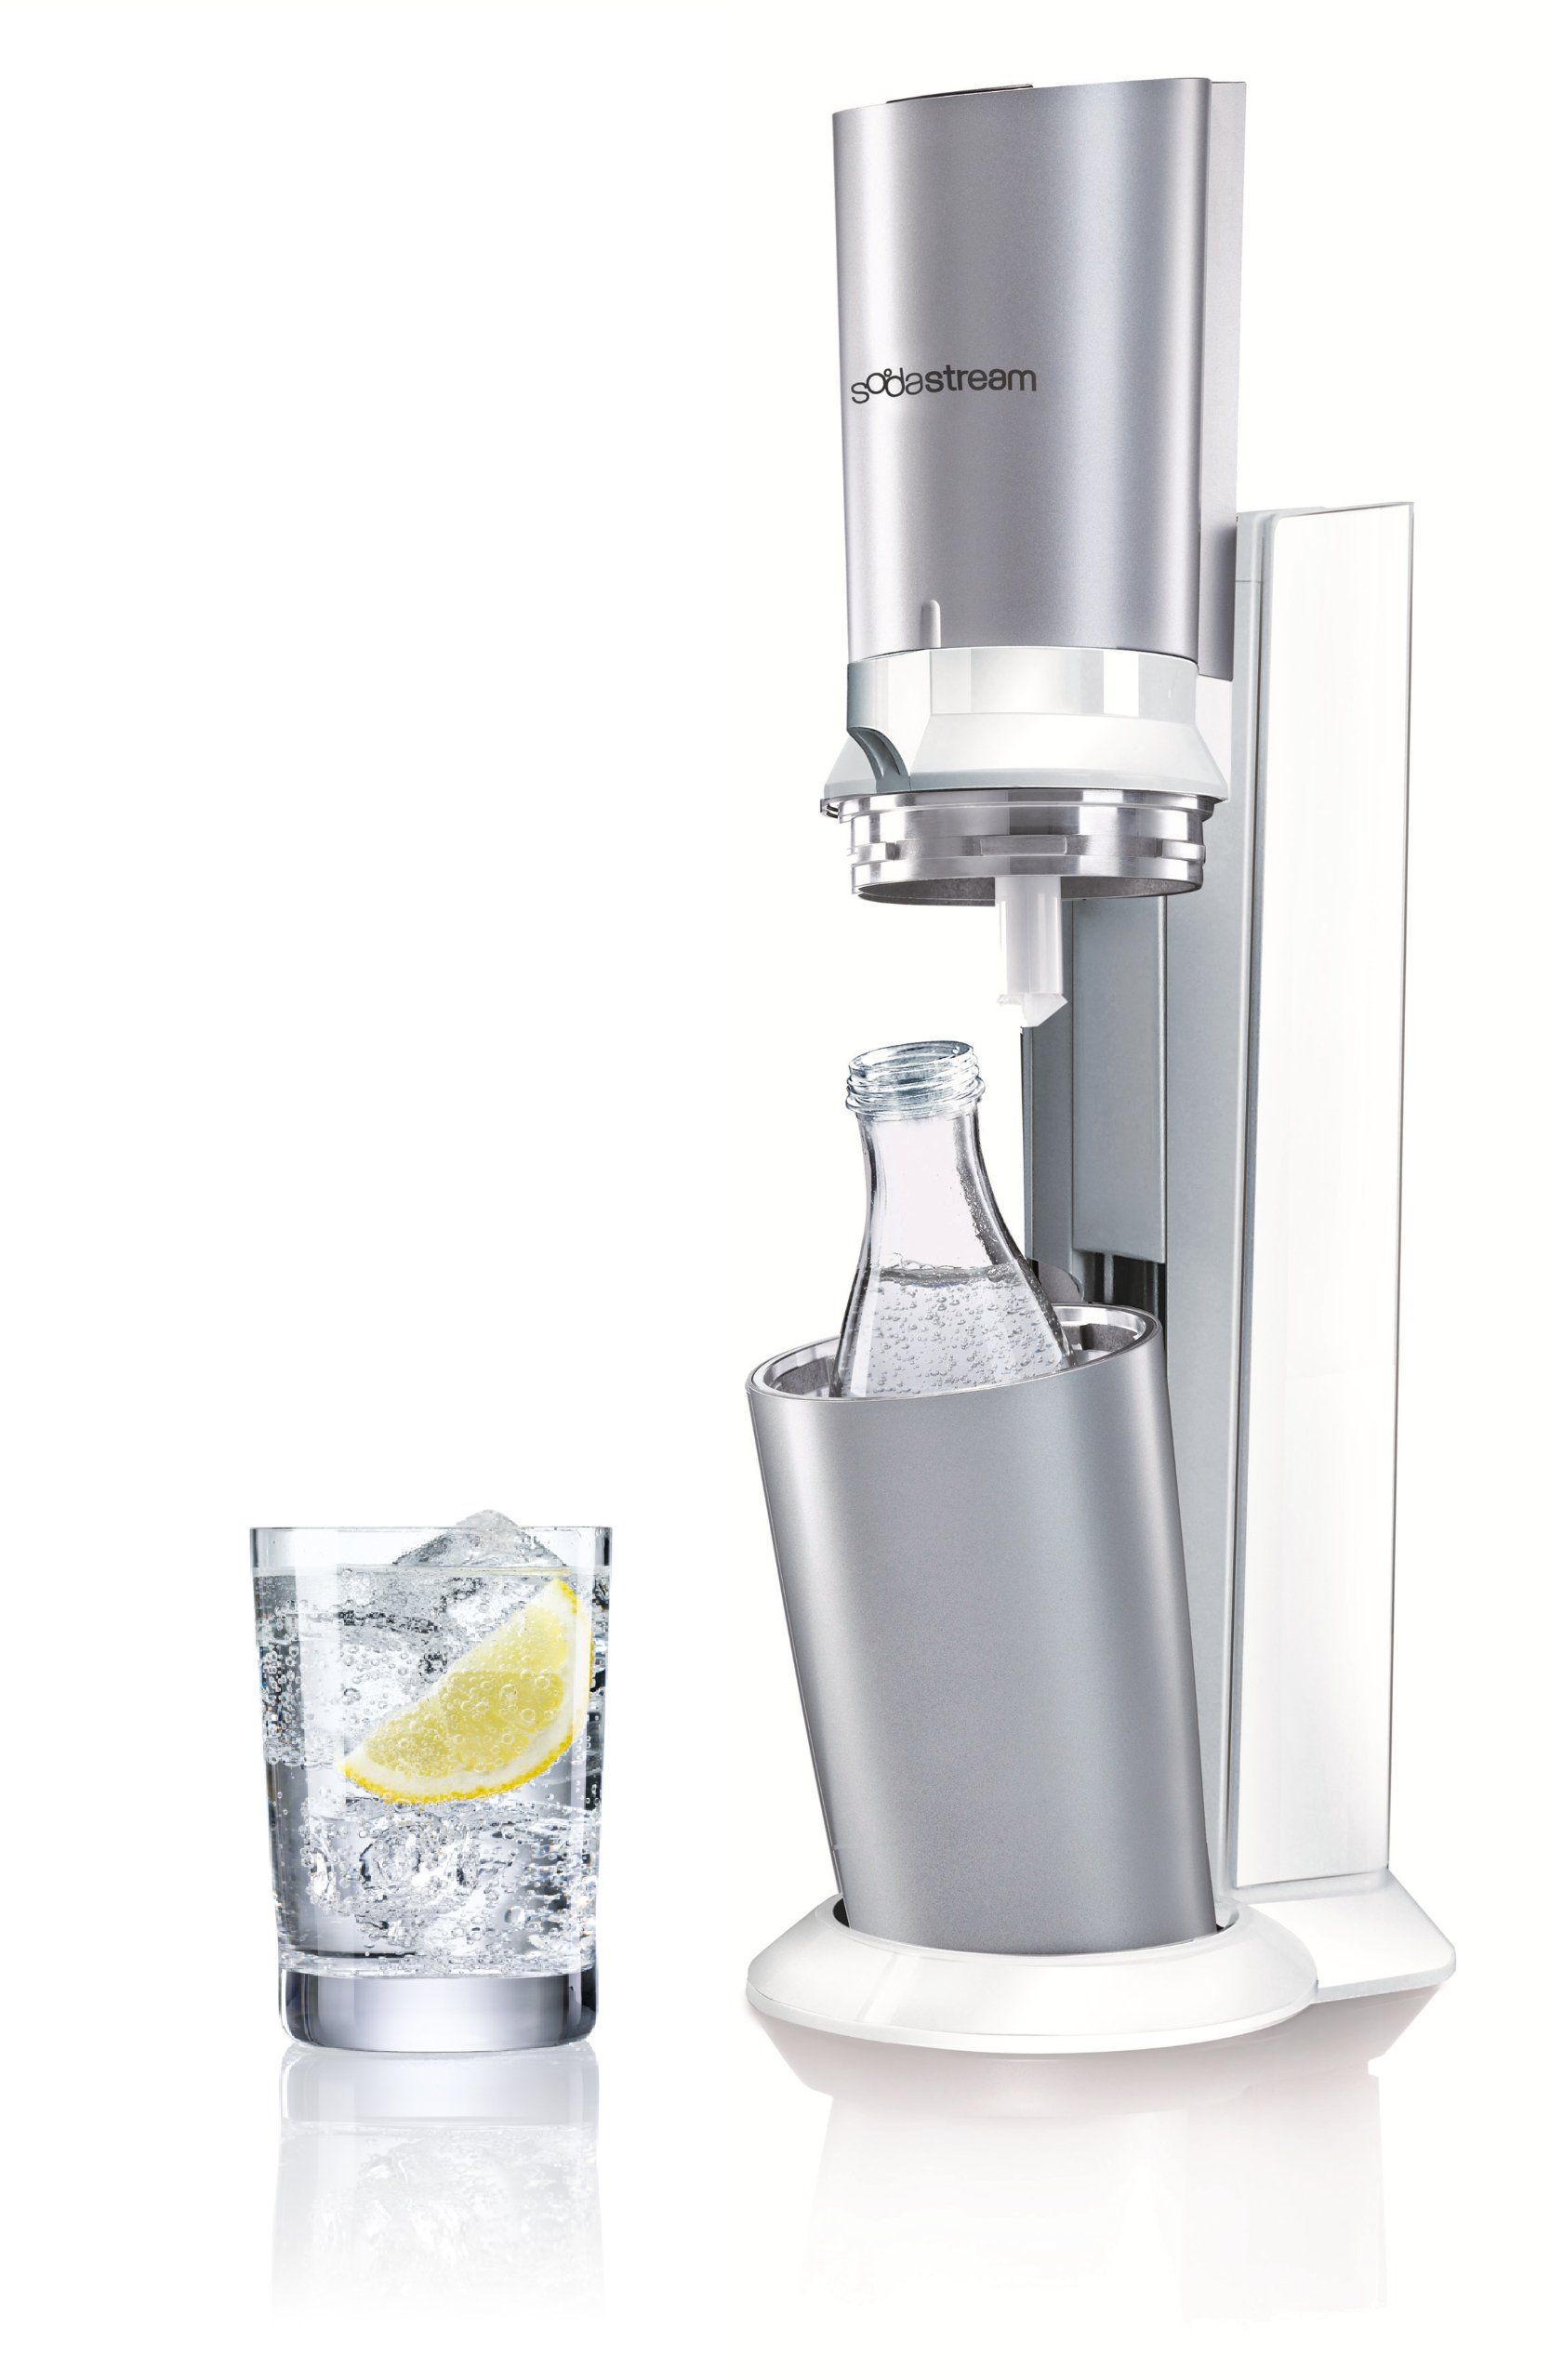 sodastream wassersprudler crystal mit 1 x co2 zylinder. Black Bedroom Furniture Sets. Home Design Ideas